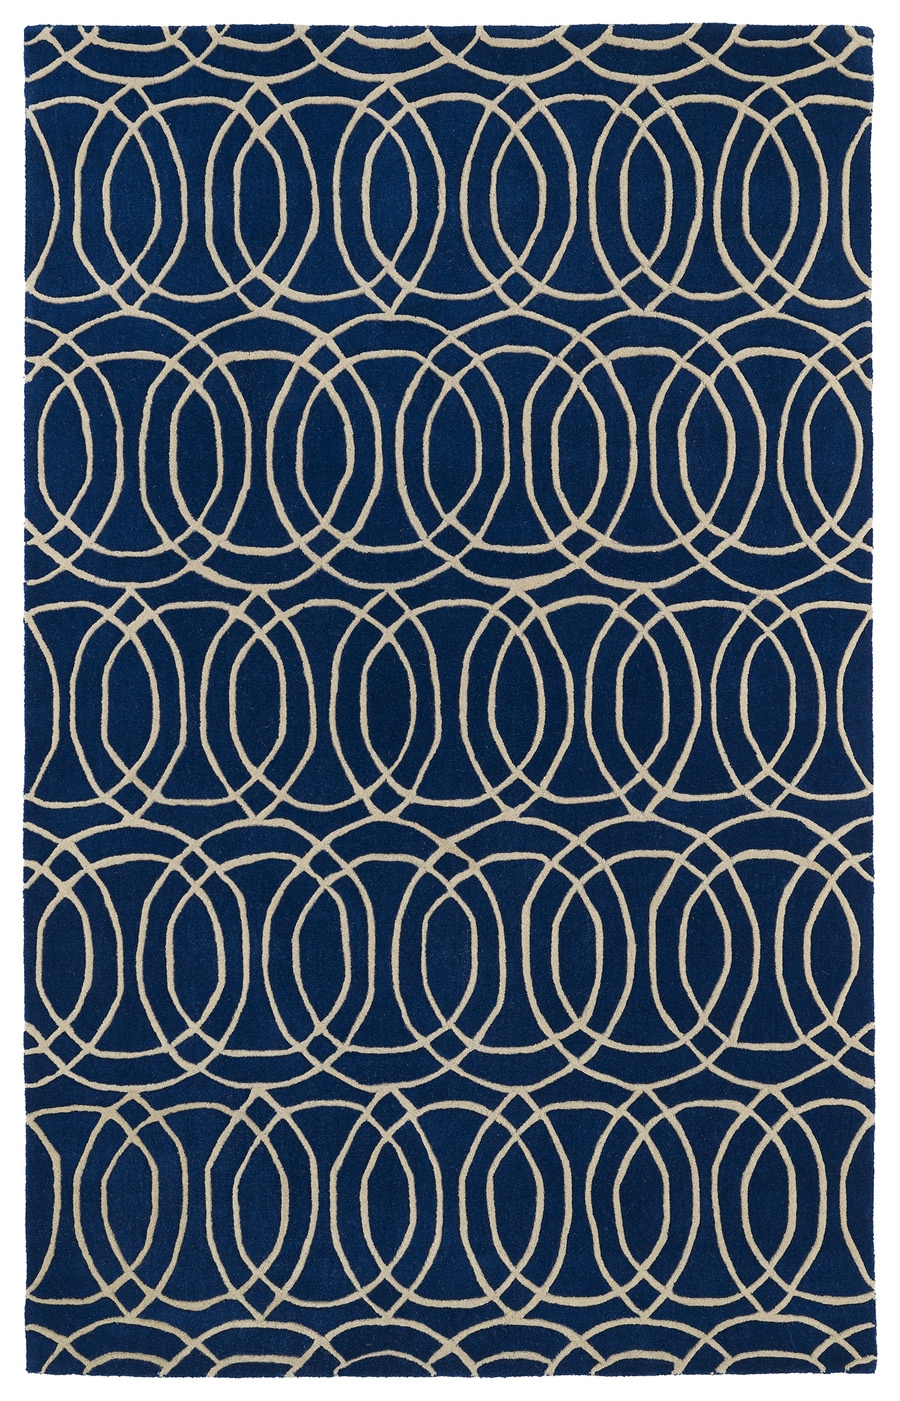 Kaleen Revolution REV02 22 Navy Rug